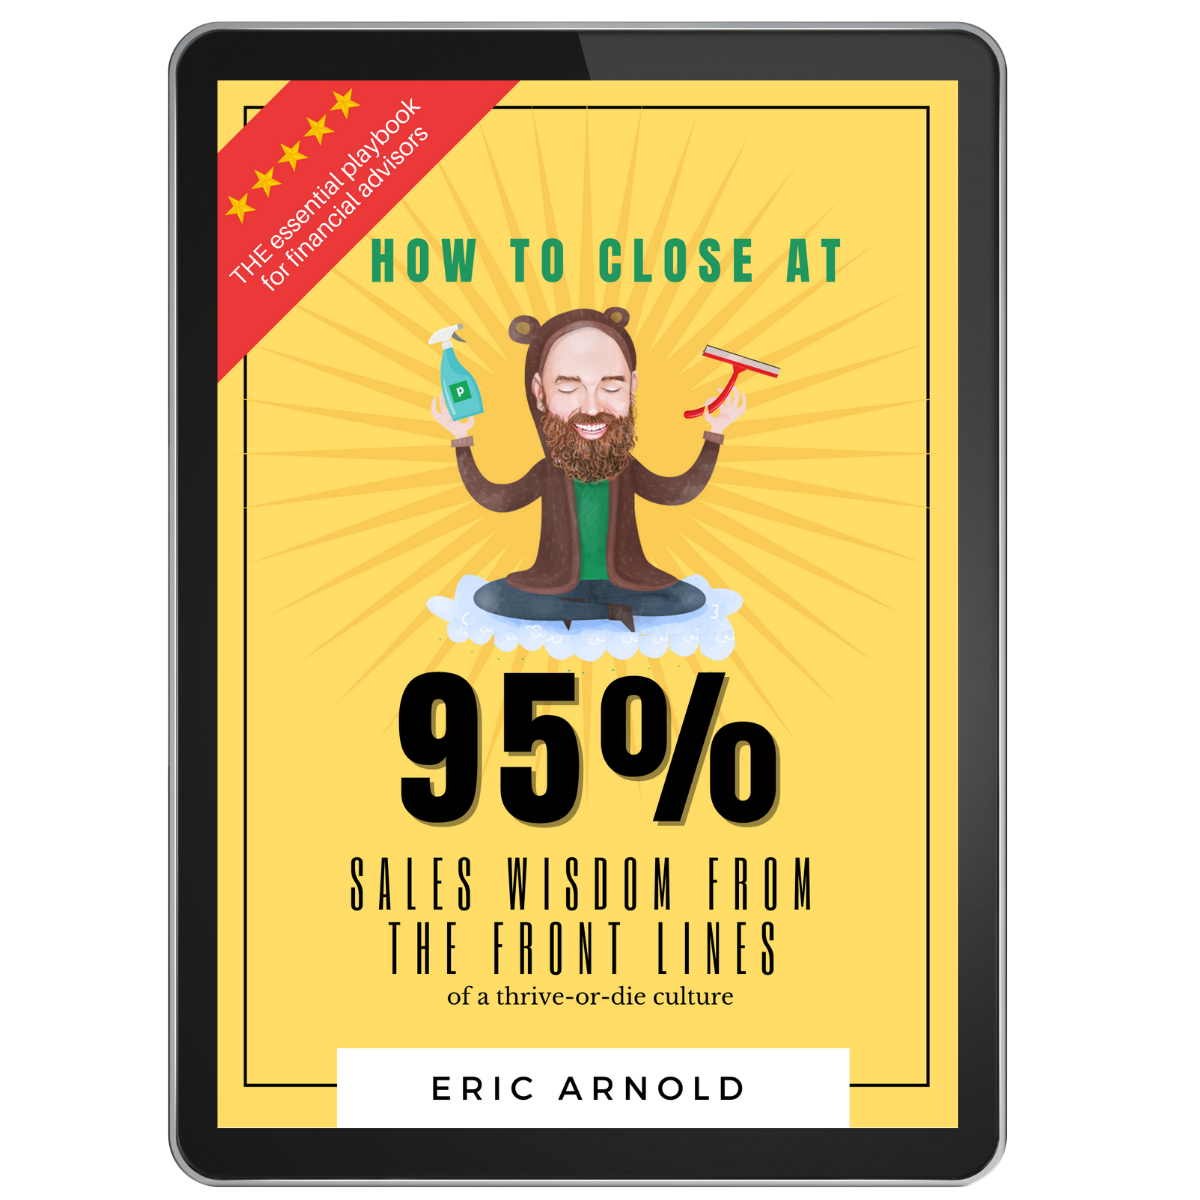 How to close at 95%